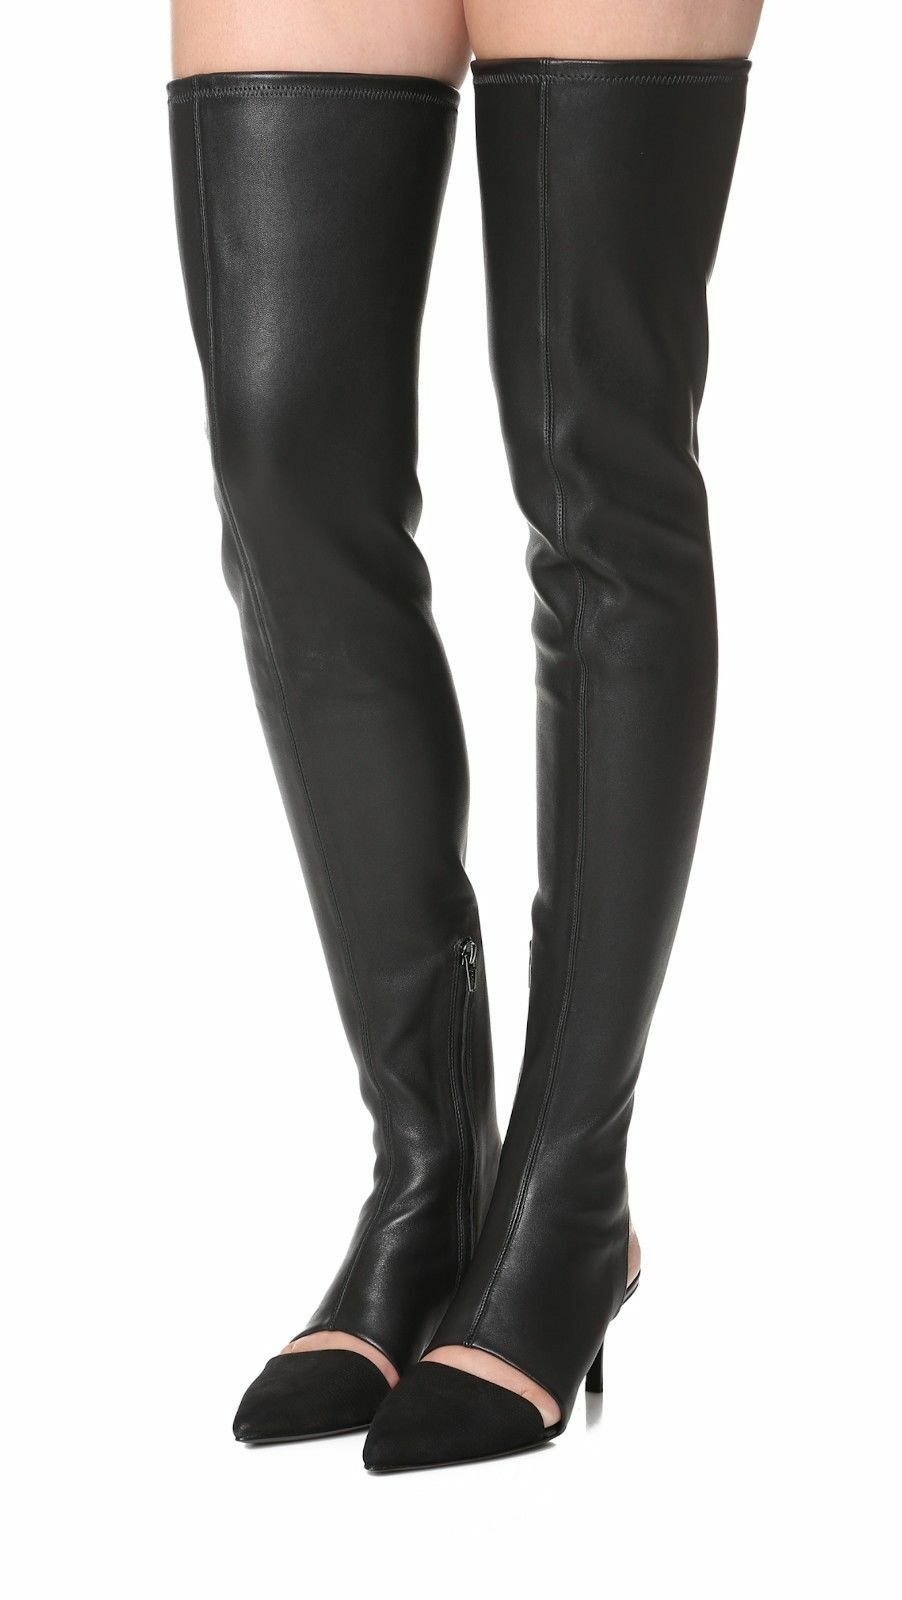 795+ Opening Ceremony GENEVOISE Over Knee Boots OTK Thigh High Black Leather 35